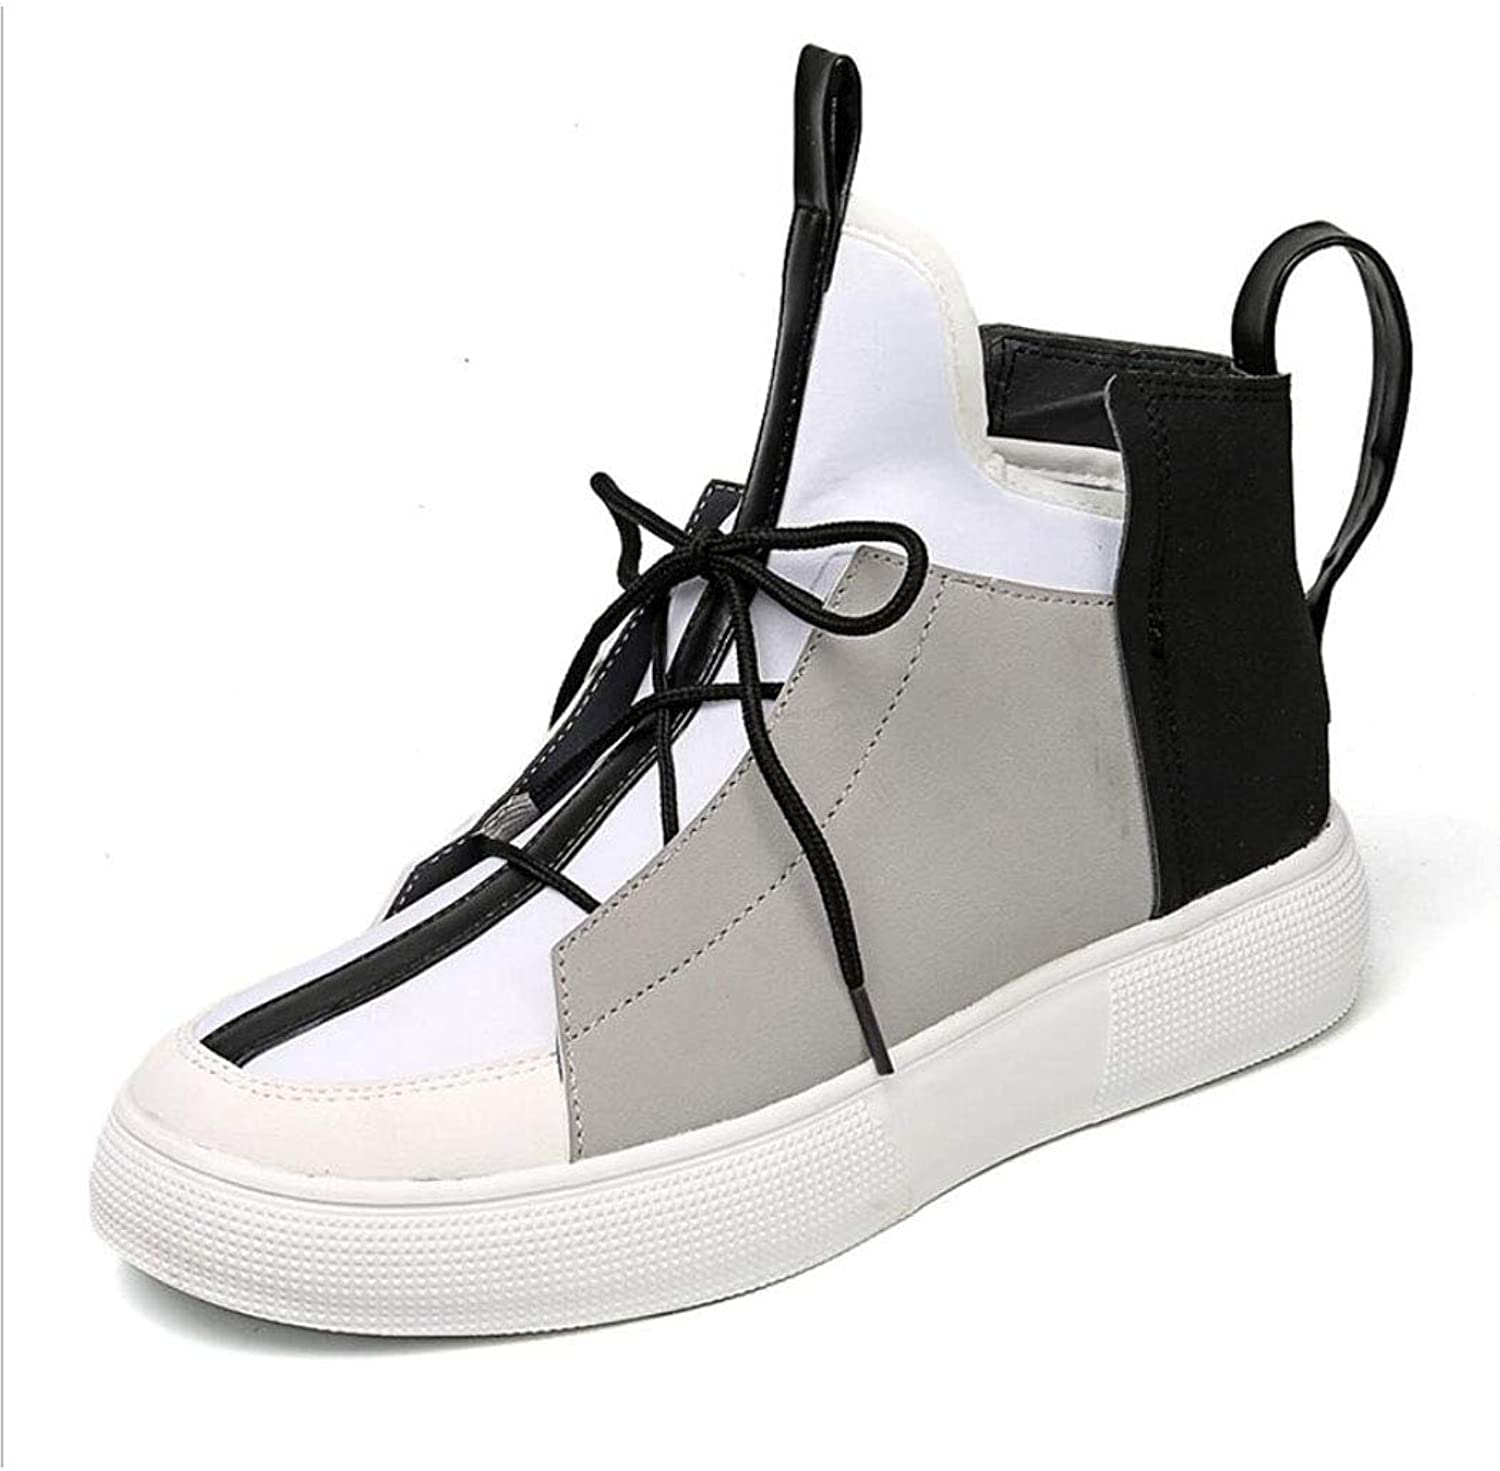 ZIXUAP Autumn and winter men's shoes student personality high to help casual shoes men's fashion Korean version of the trend of thick-soled sports shoes